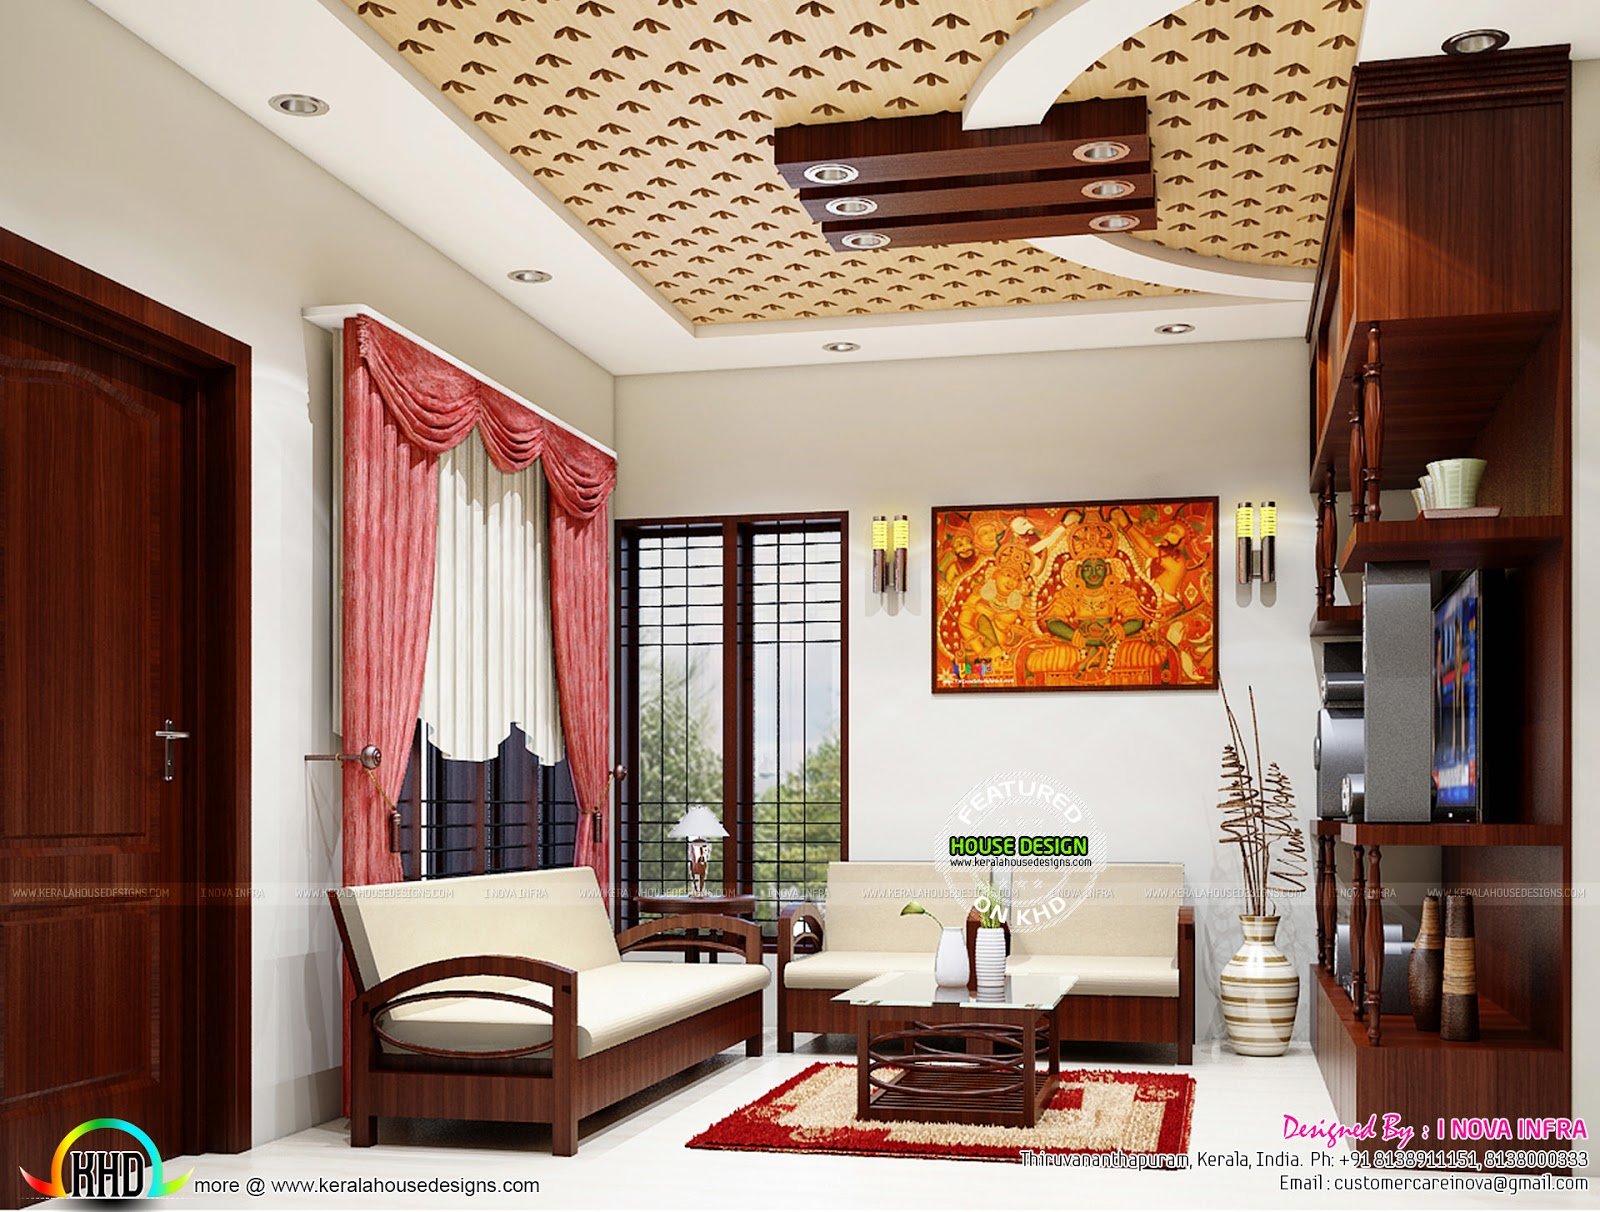 kerala traditional interiors kerala home design and floor plans. Black Bedroom Furniture Sets. Home Design Ideas